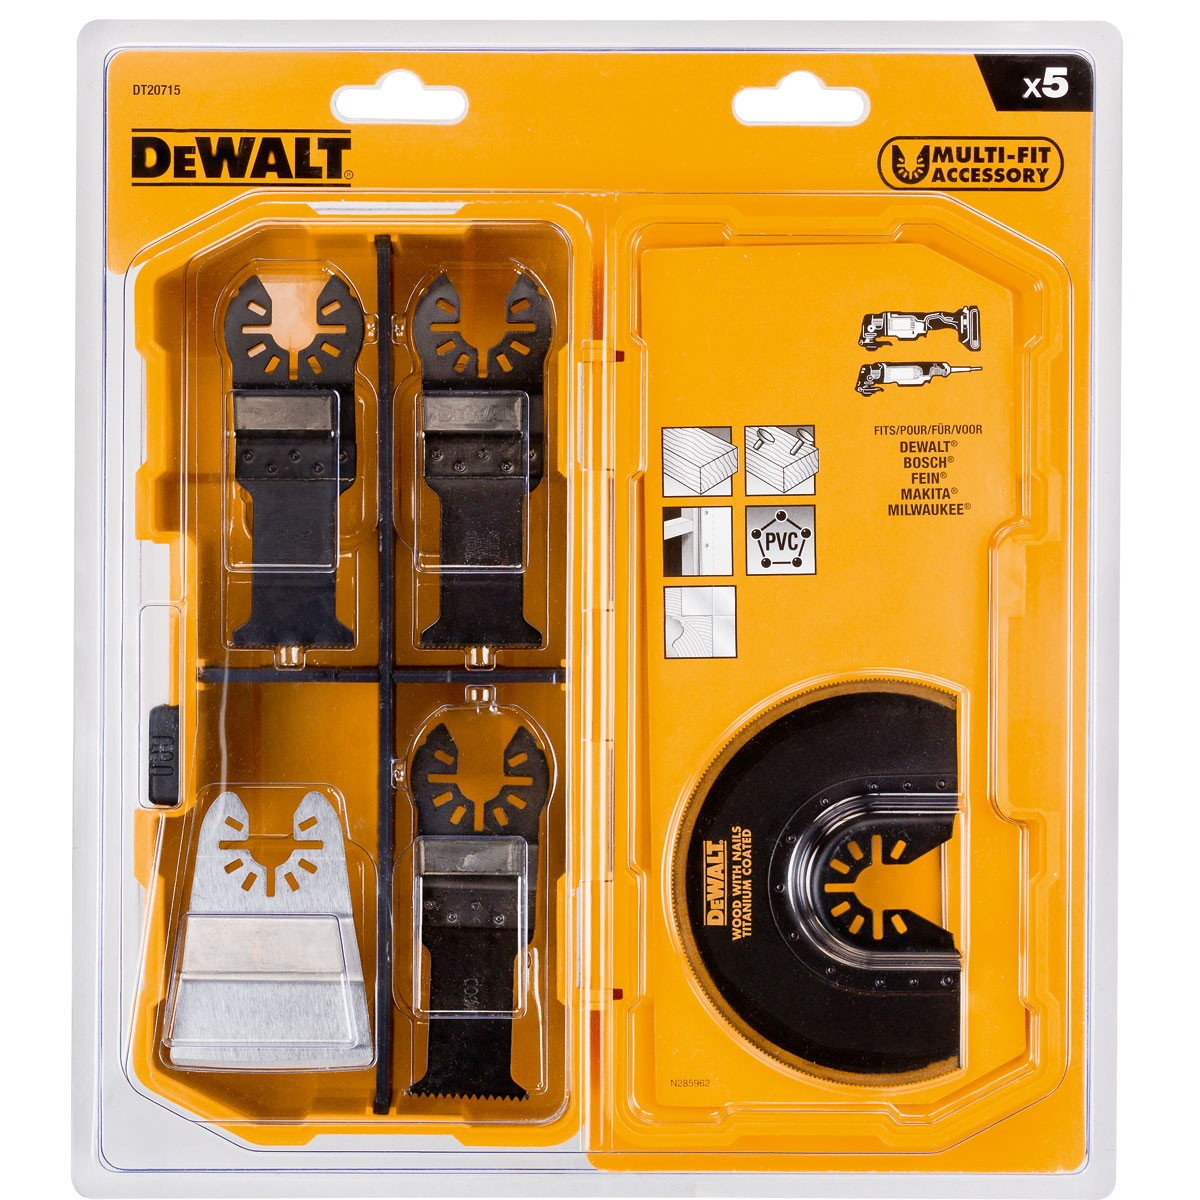 DeWalt DT20715-QZ 5 Piece Oscillating Tool Set